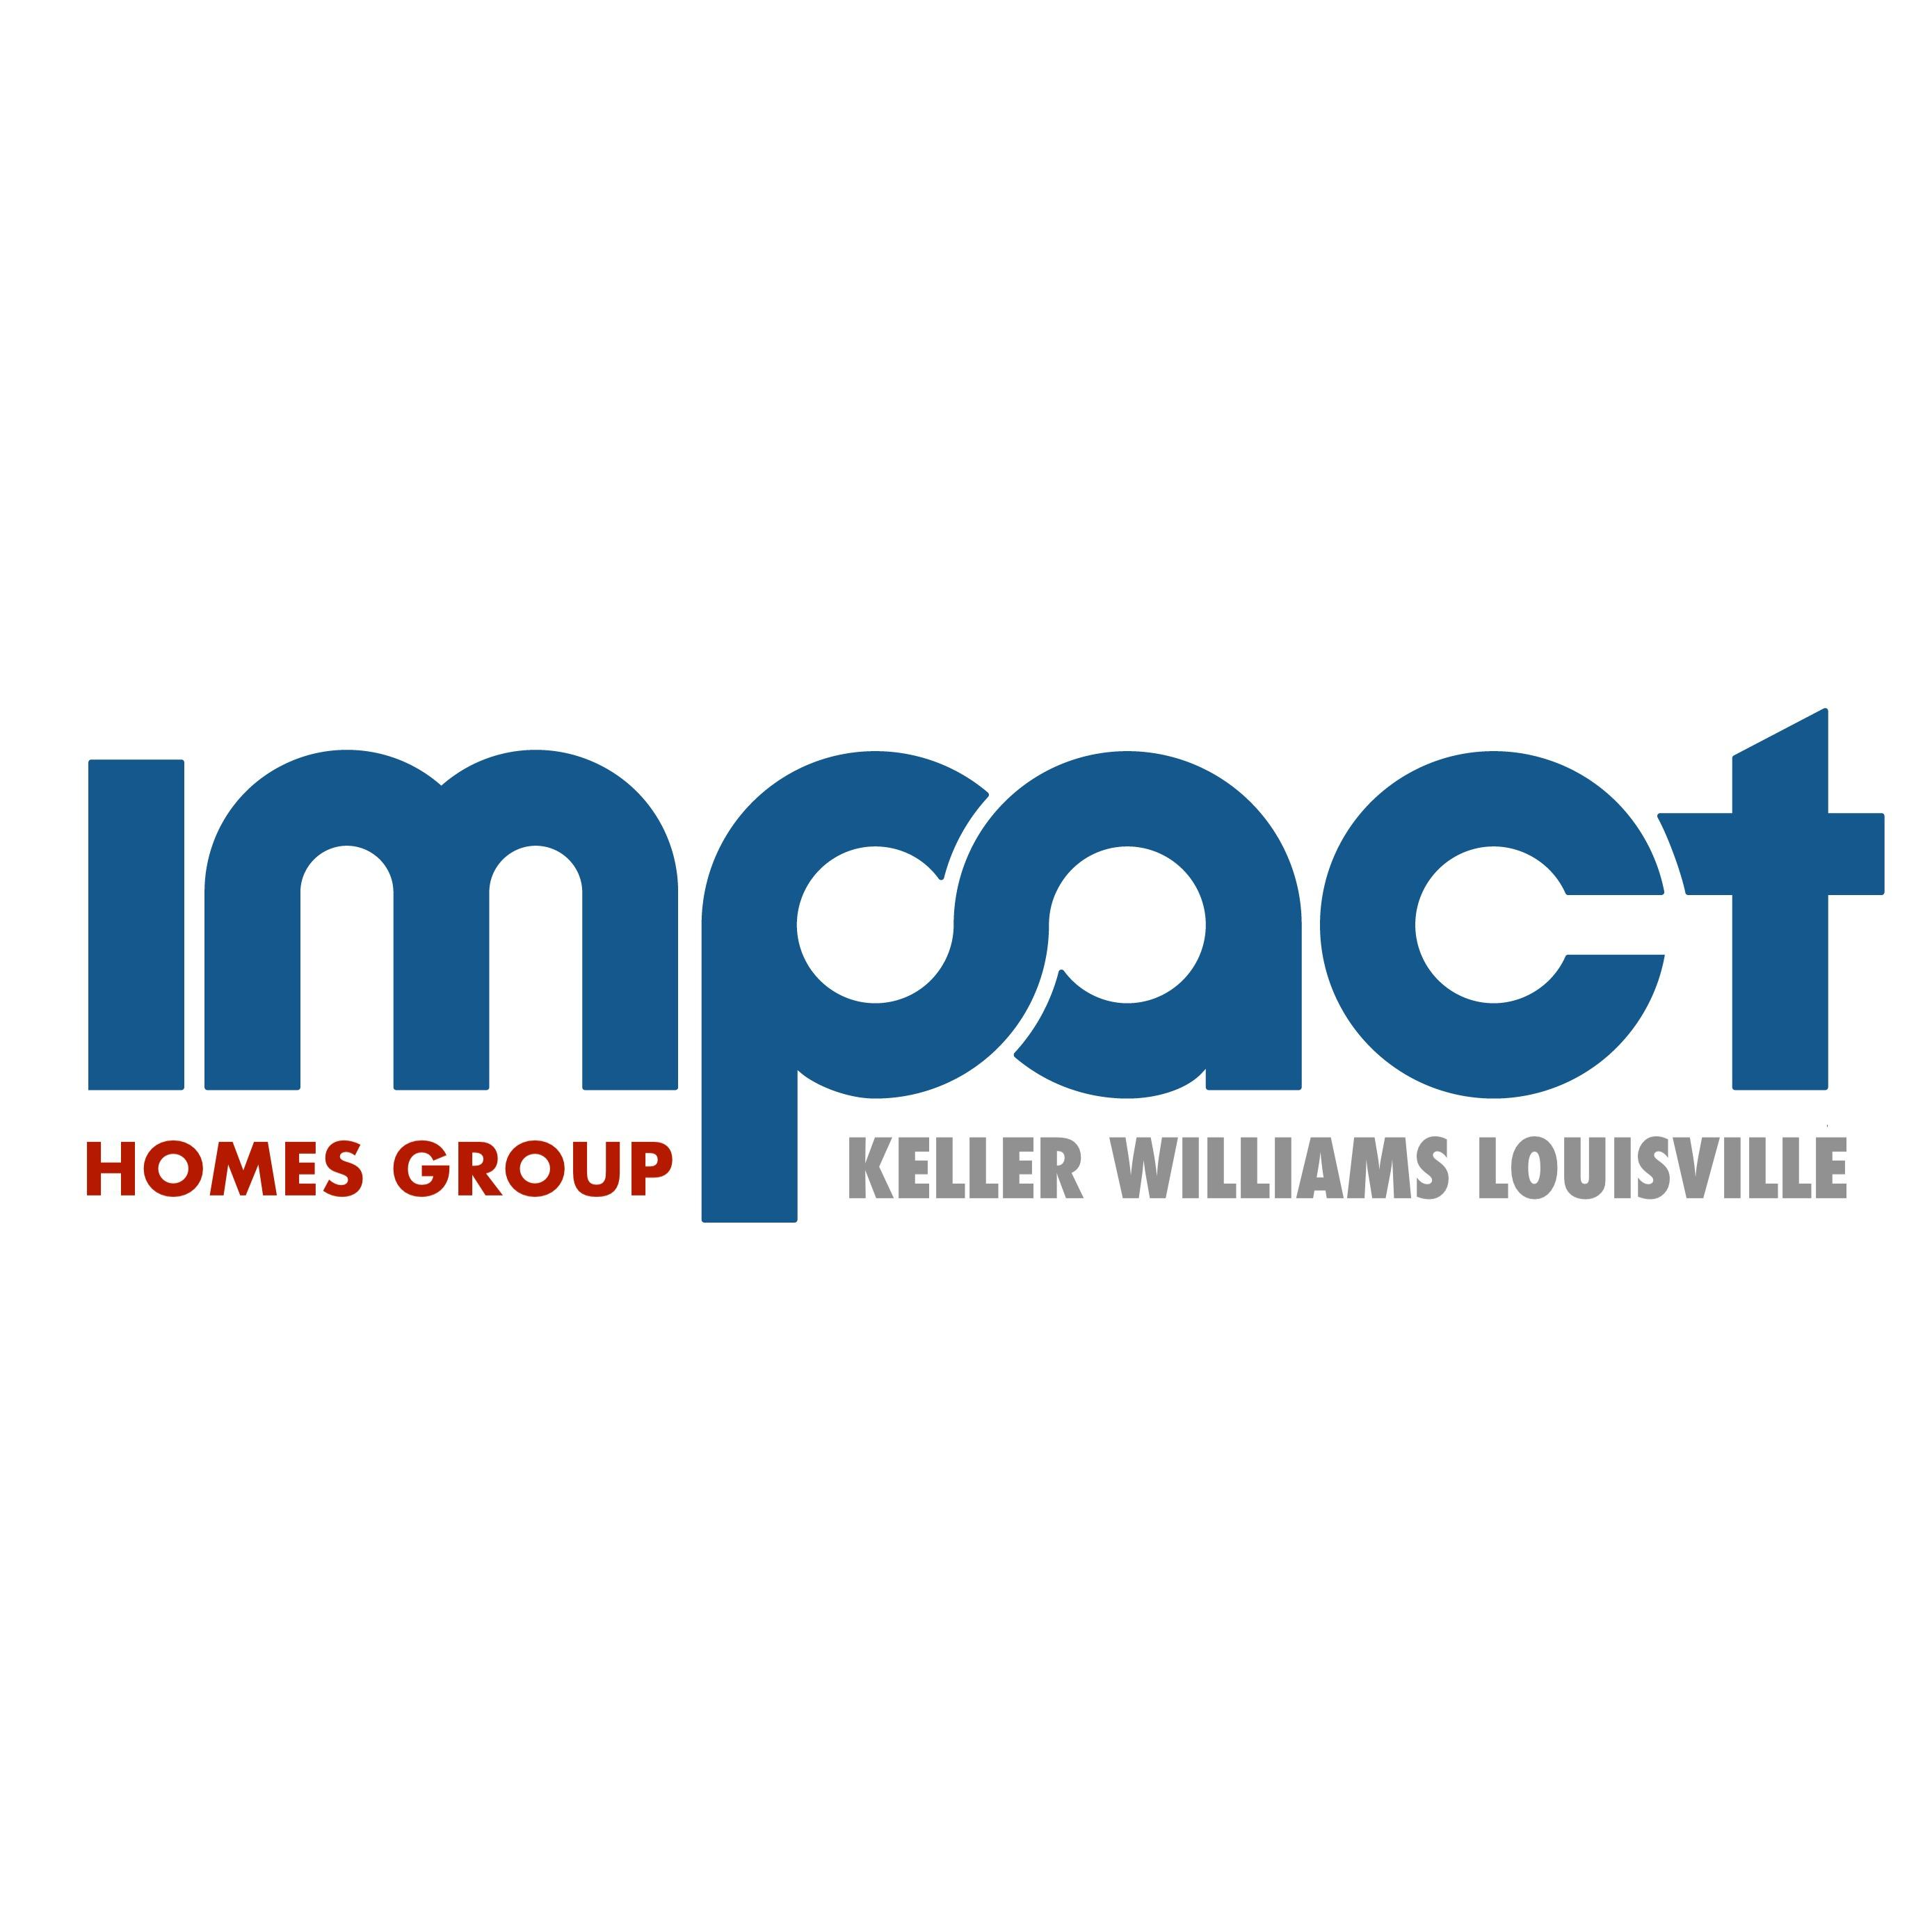 Impact Homes Group